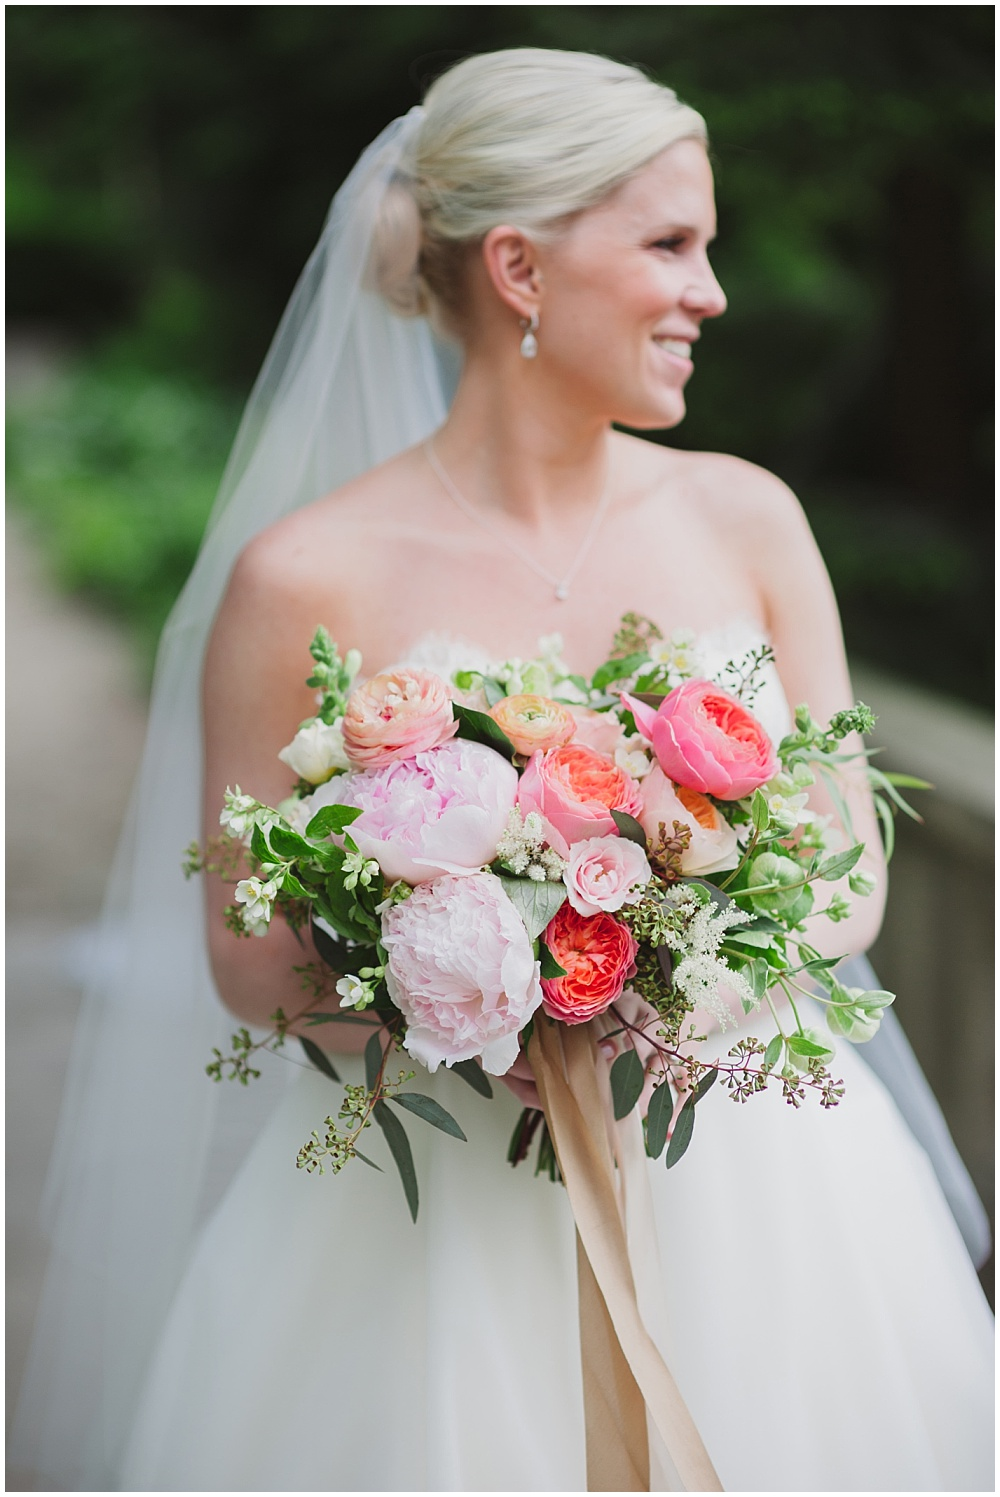 Blush, pink and green spring bridal bouquet   Ritz Charles Garden Pavilion Wedding by Stacy Able Photography & Jessica Dum Wedding Coordination